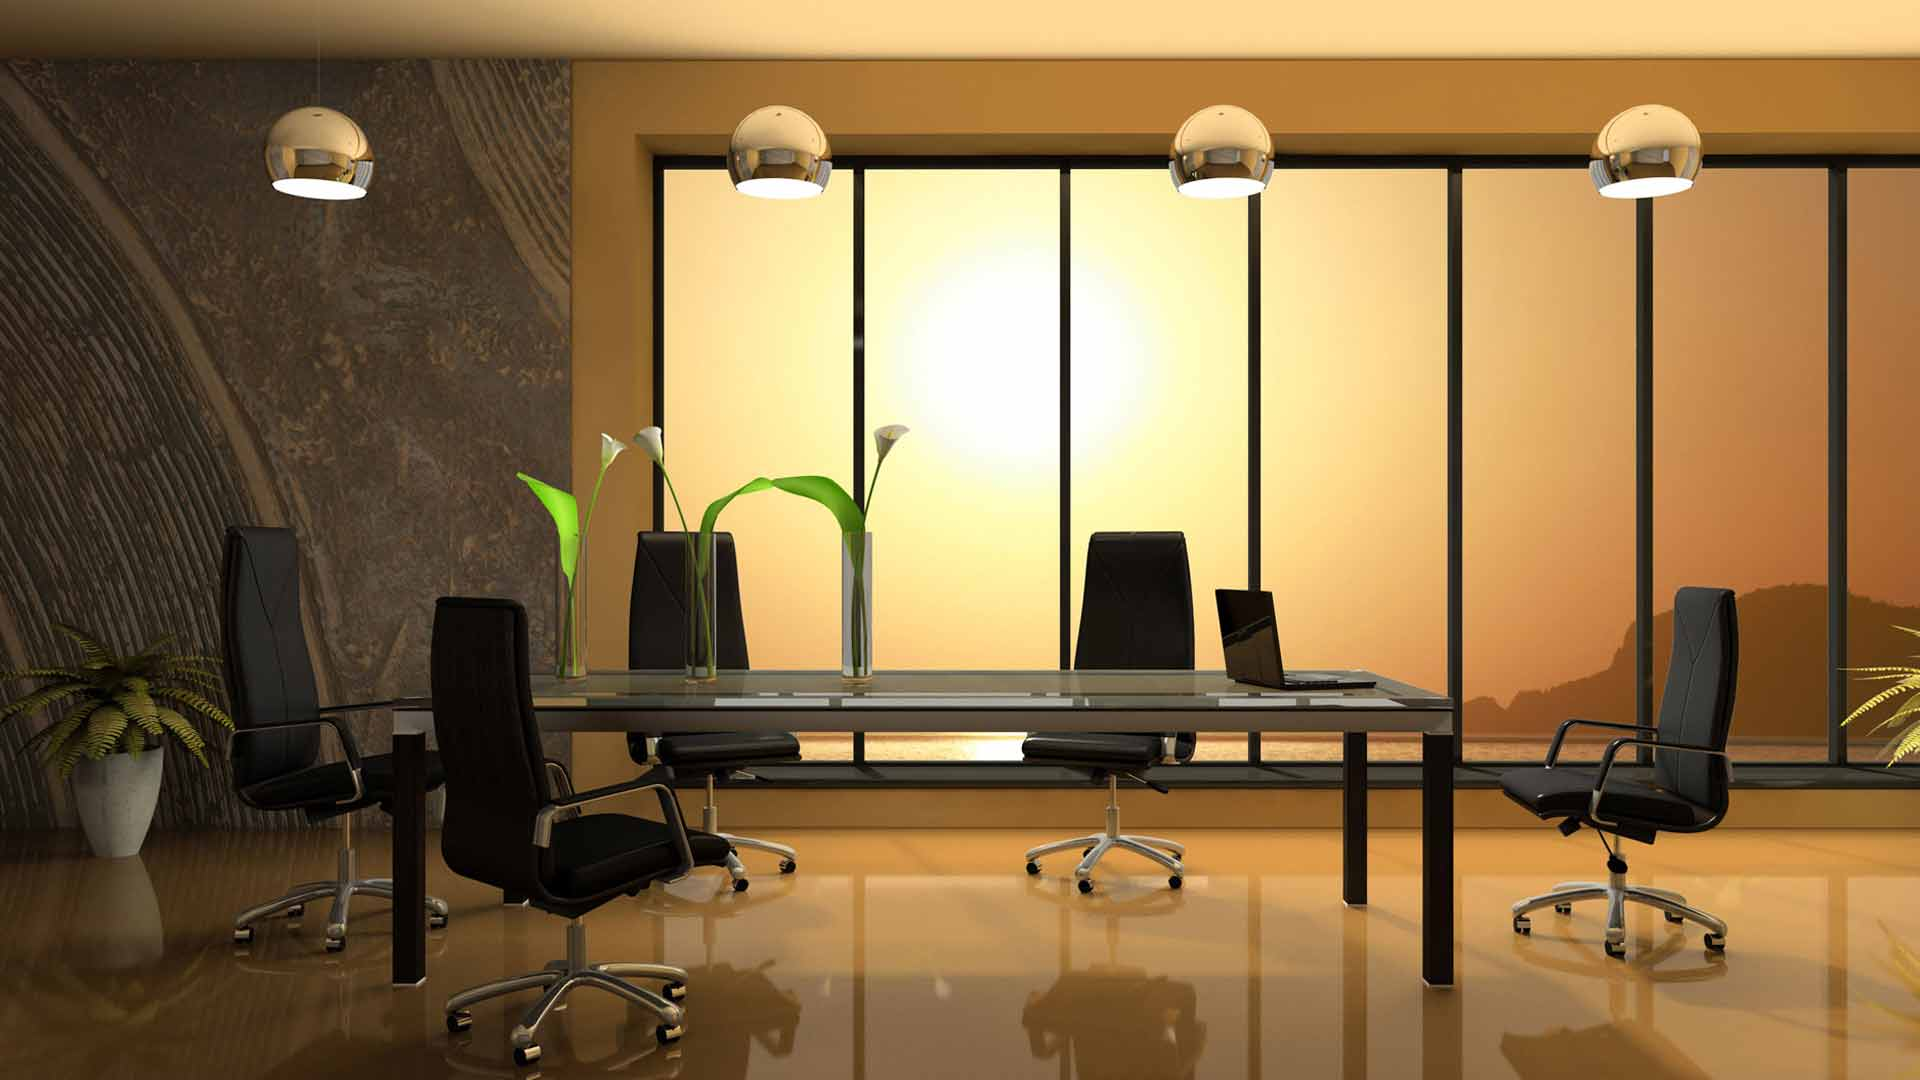 Interior designers in kochi best interior design company for About us content for interior design company